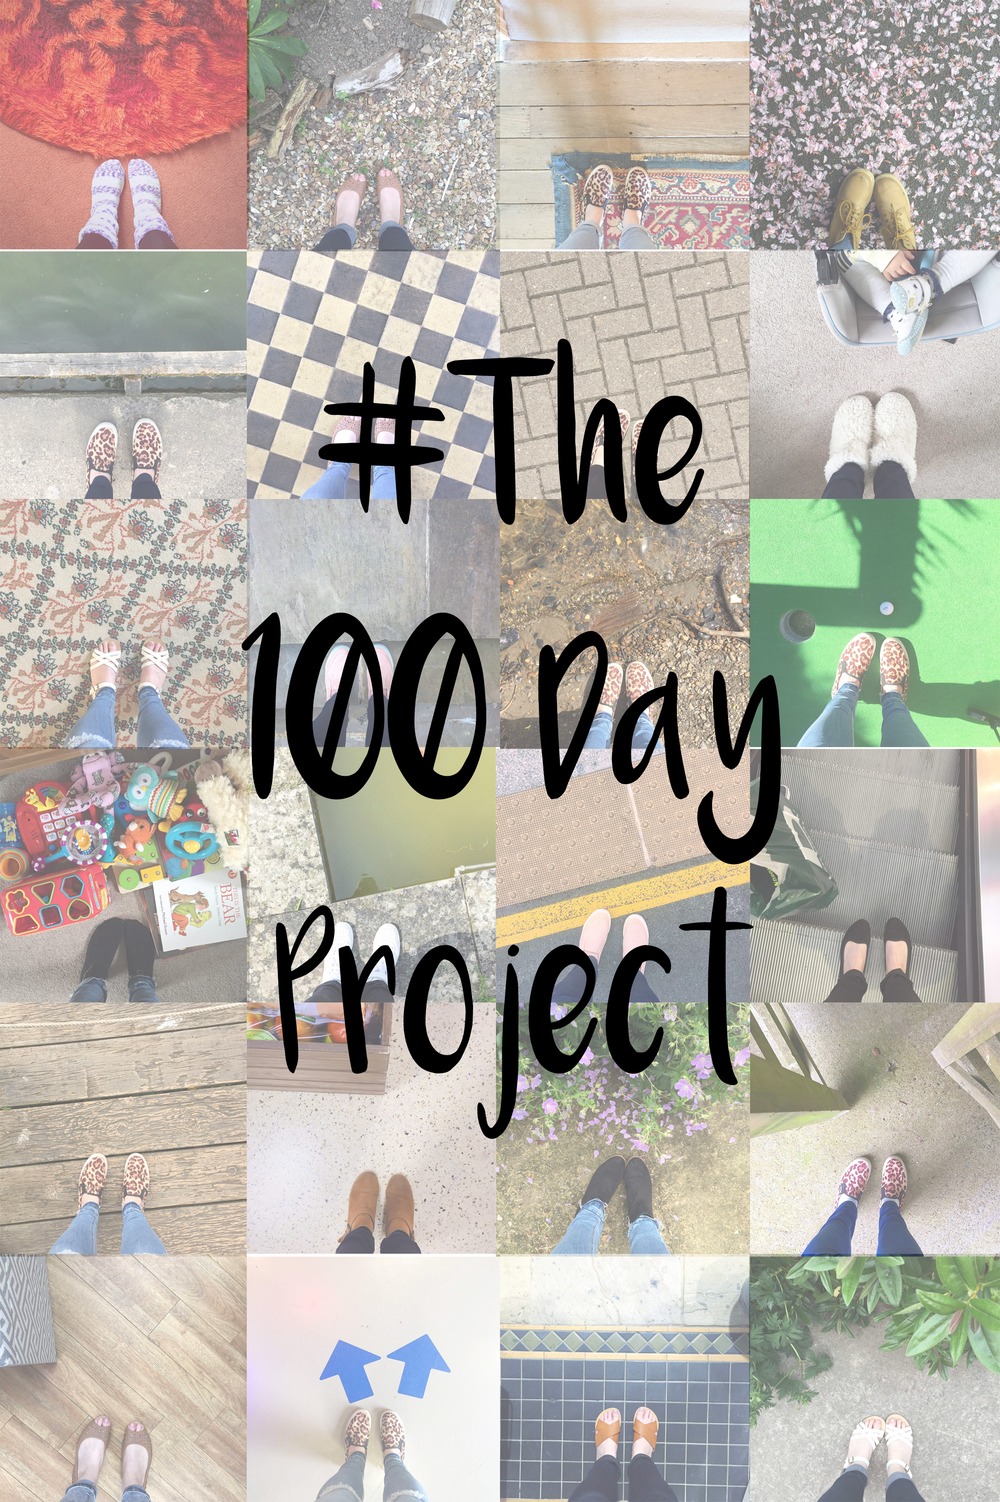 Check out my 100 Day Project on Instagram here!